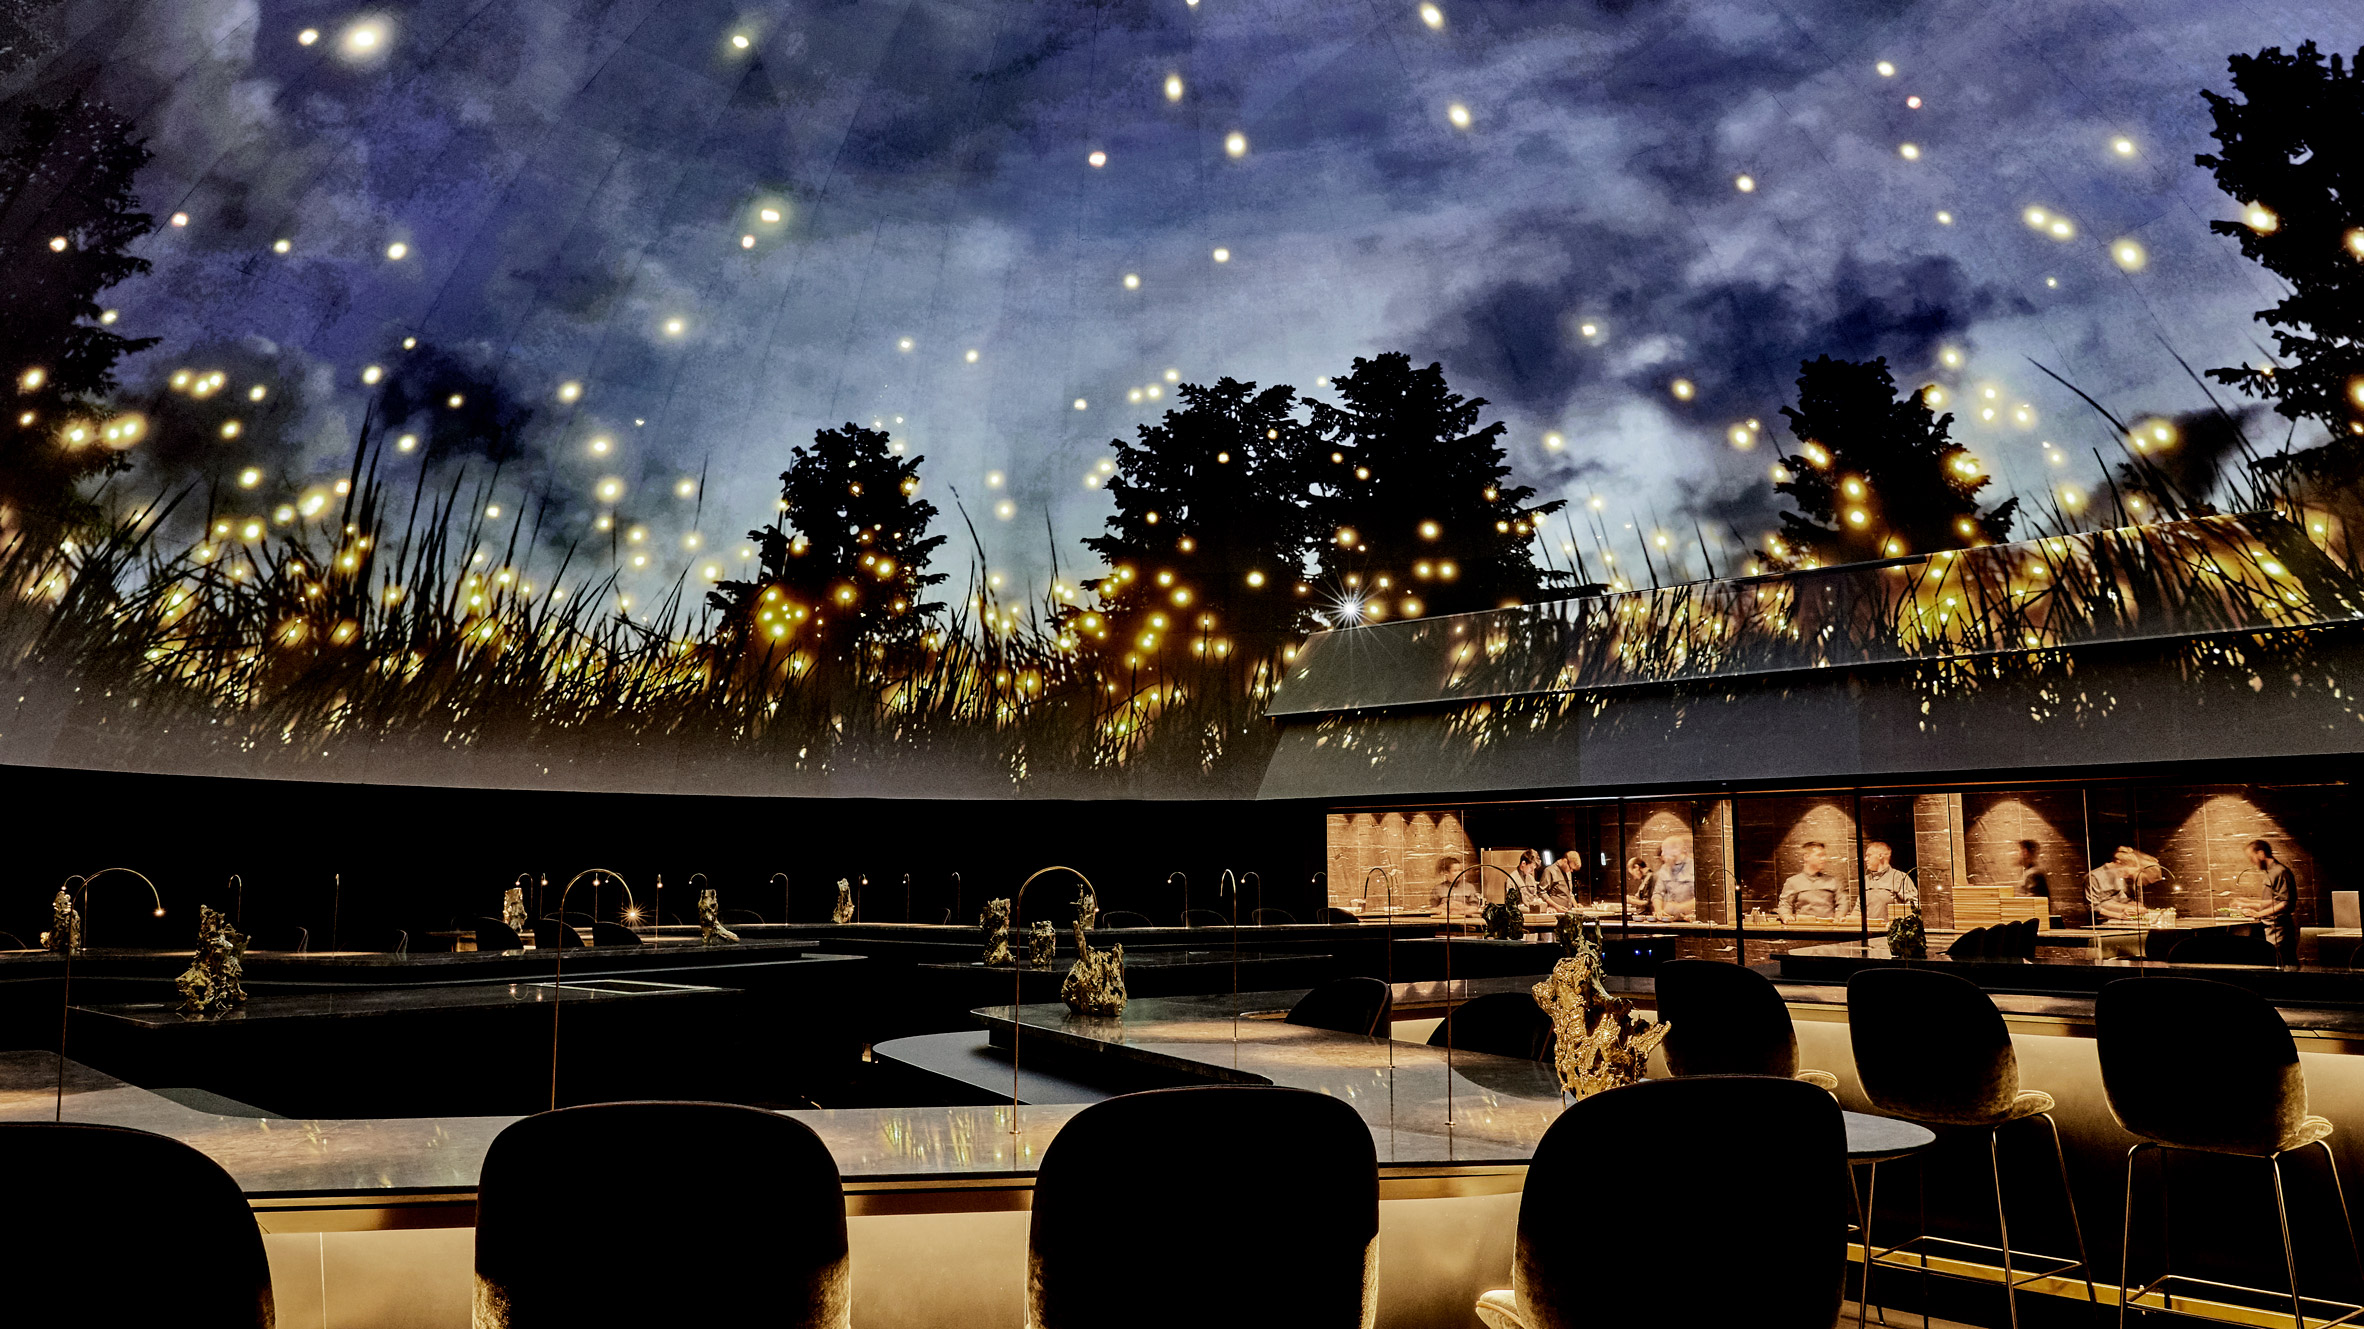 Planetarium Style Ceiling Arches Over Diners Inside The